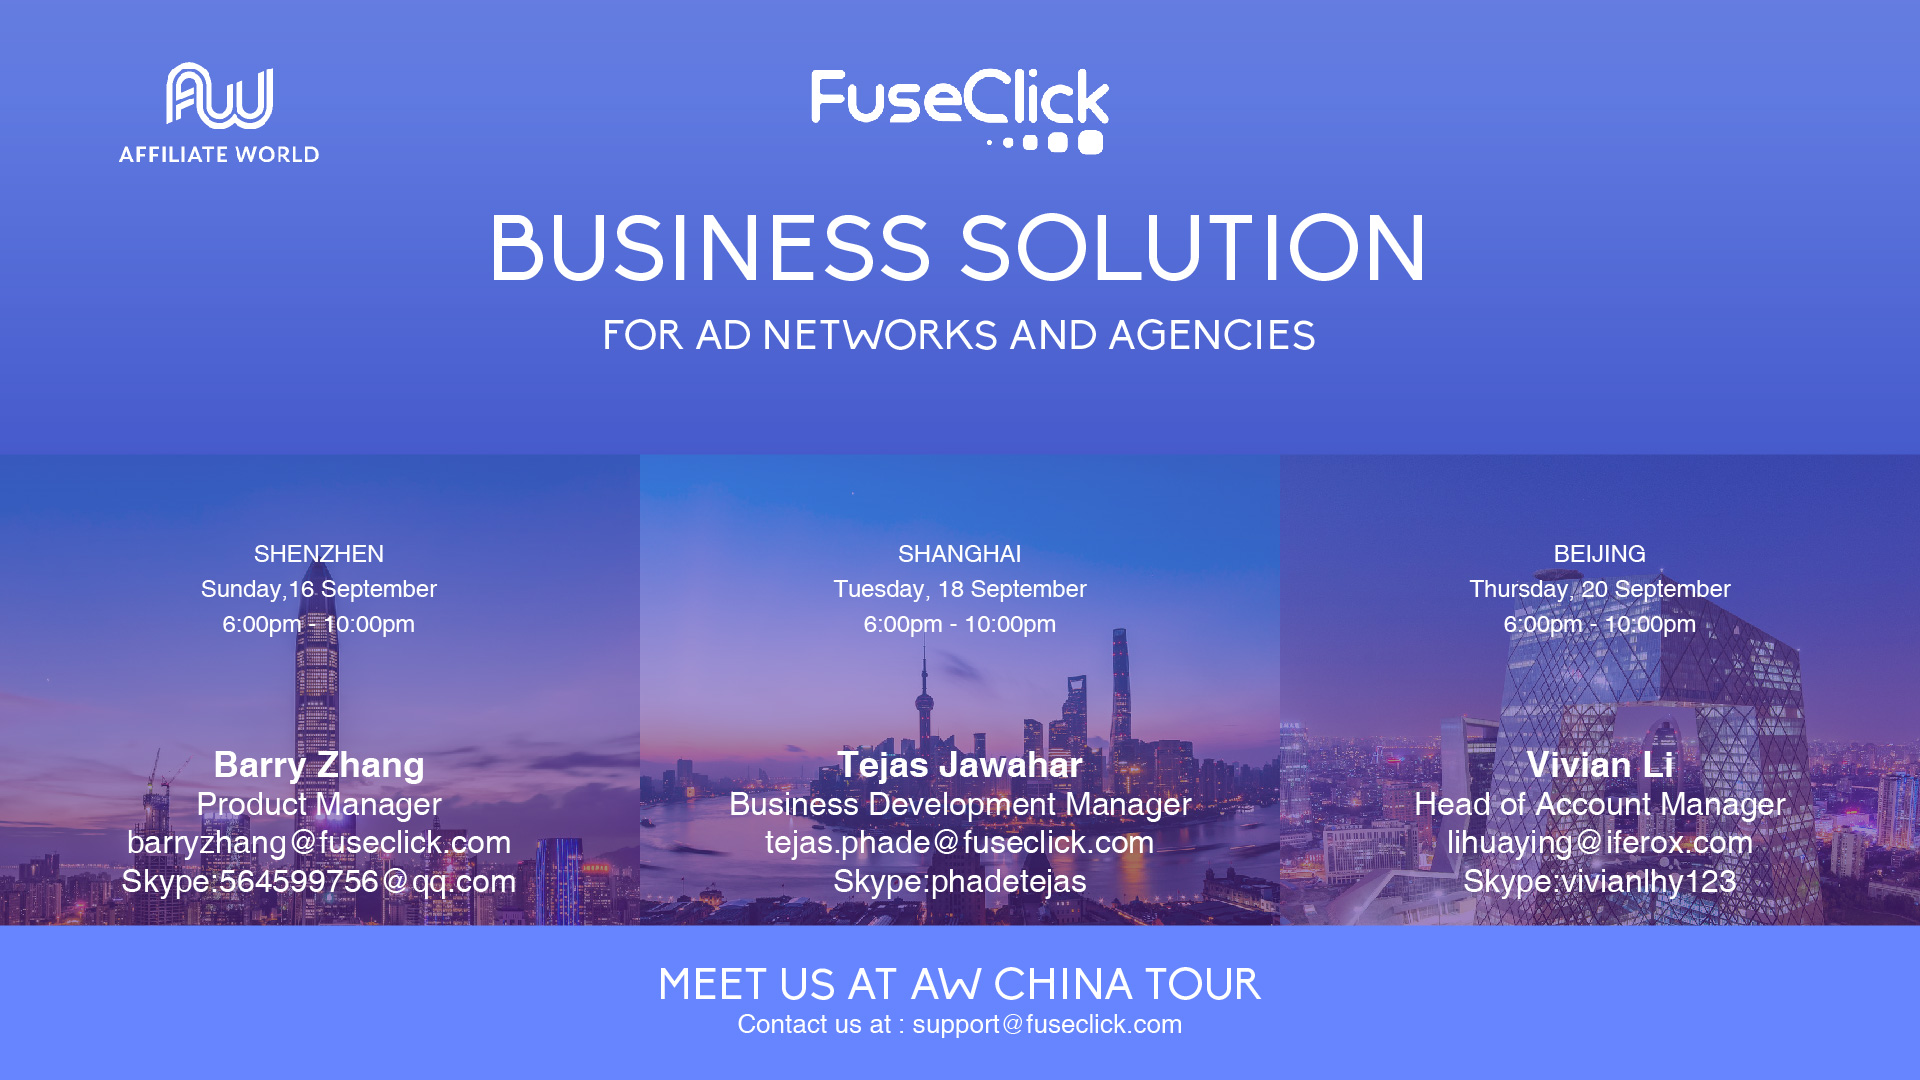 Meet us @AW China Tour